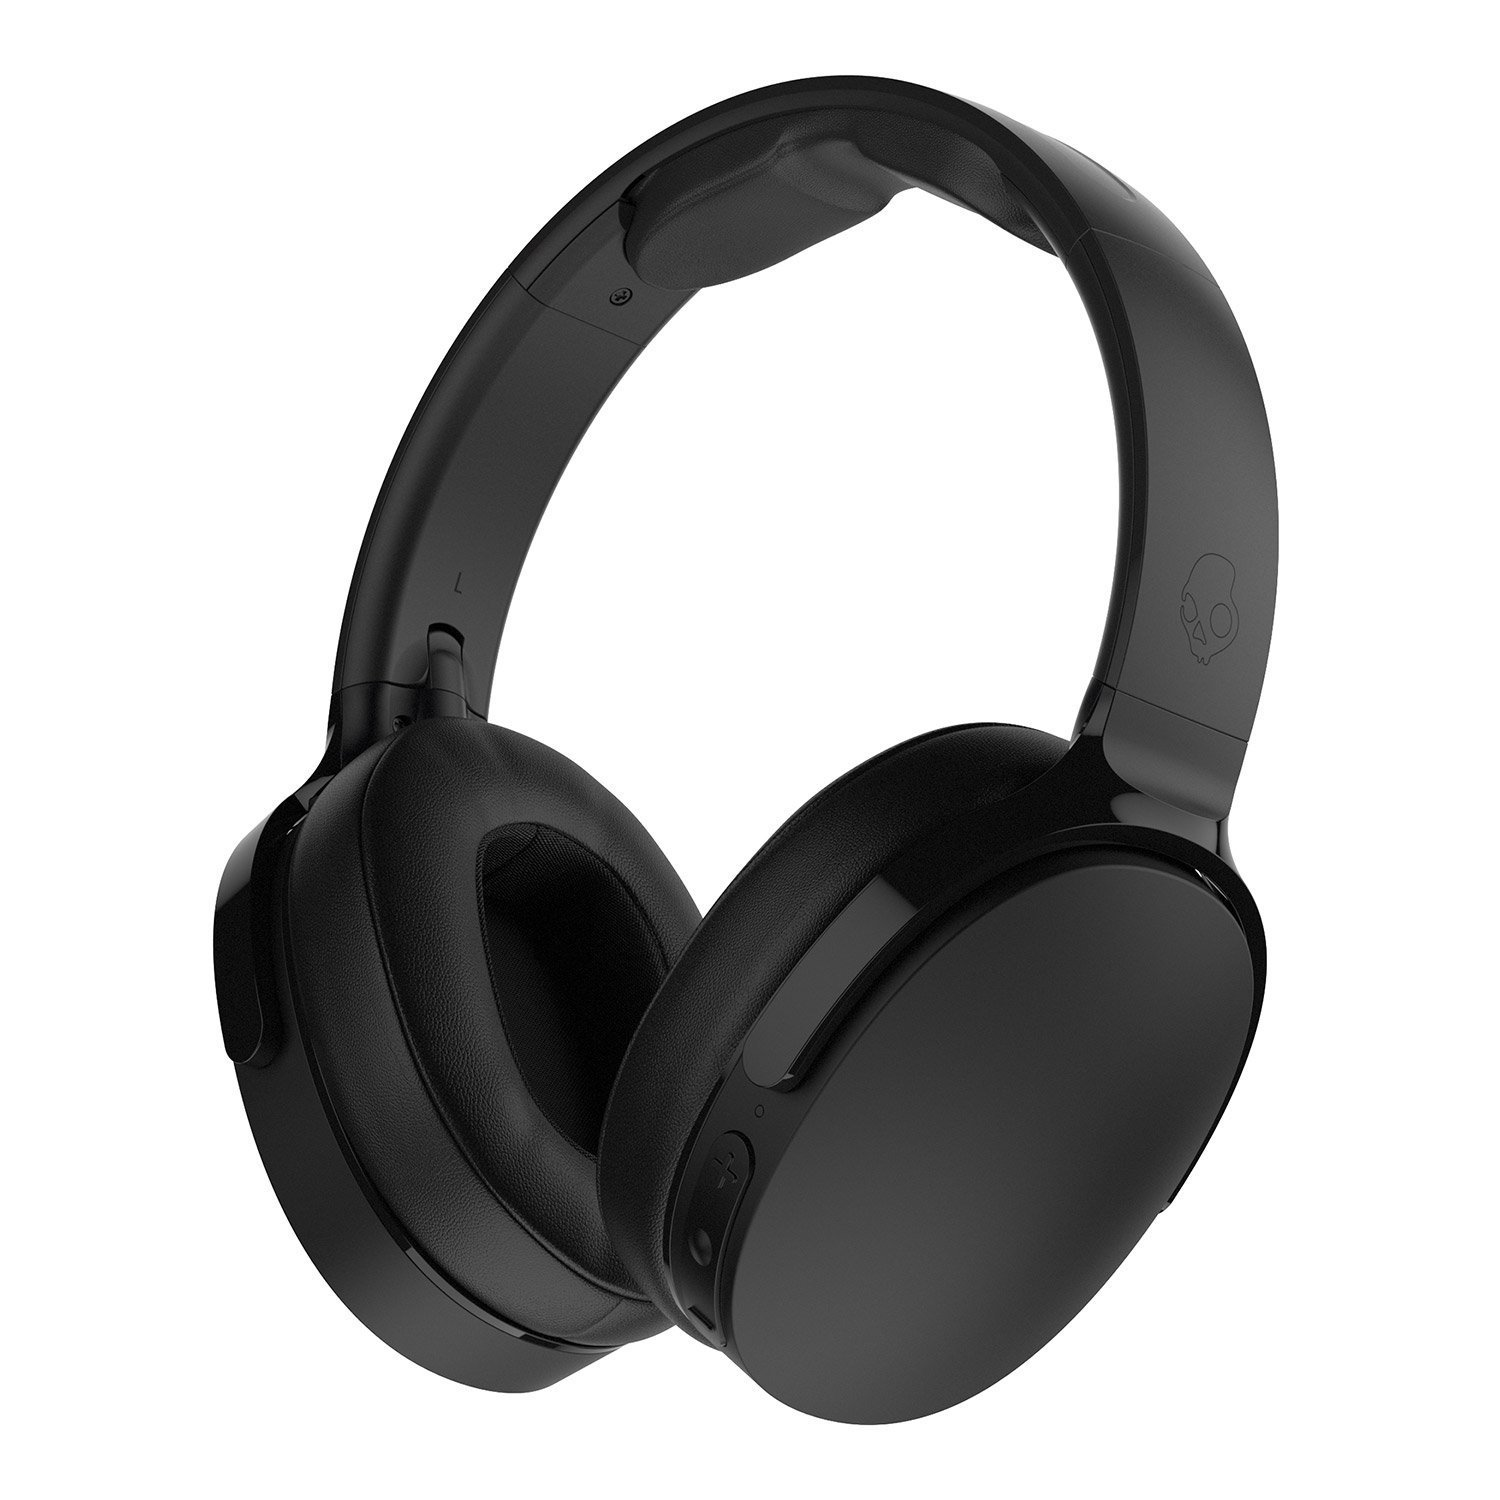 Skullcandy Hesh 3 Bluetooth Wireless Over-Ear Headphones with Microphone, Rapid Charge 22-Hour Battery, Foldable, Memory Foam Ear Cushions for Comfortable All-Day Fit, Black by Skullcandy